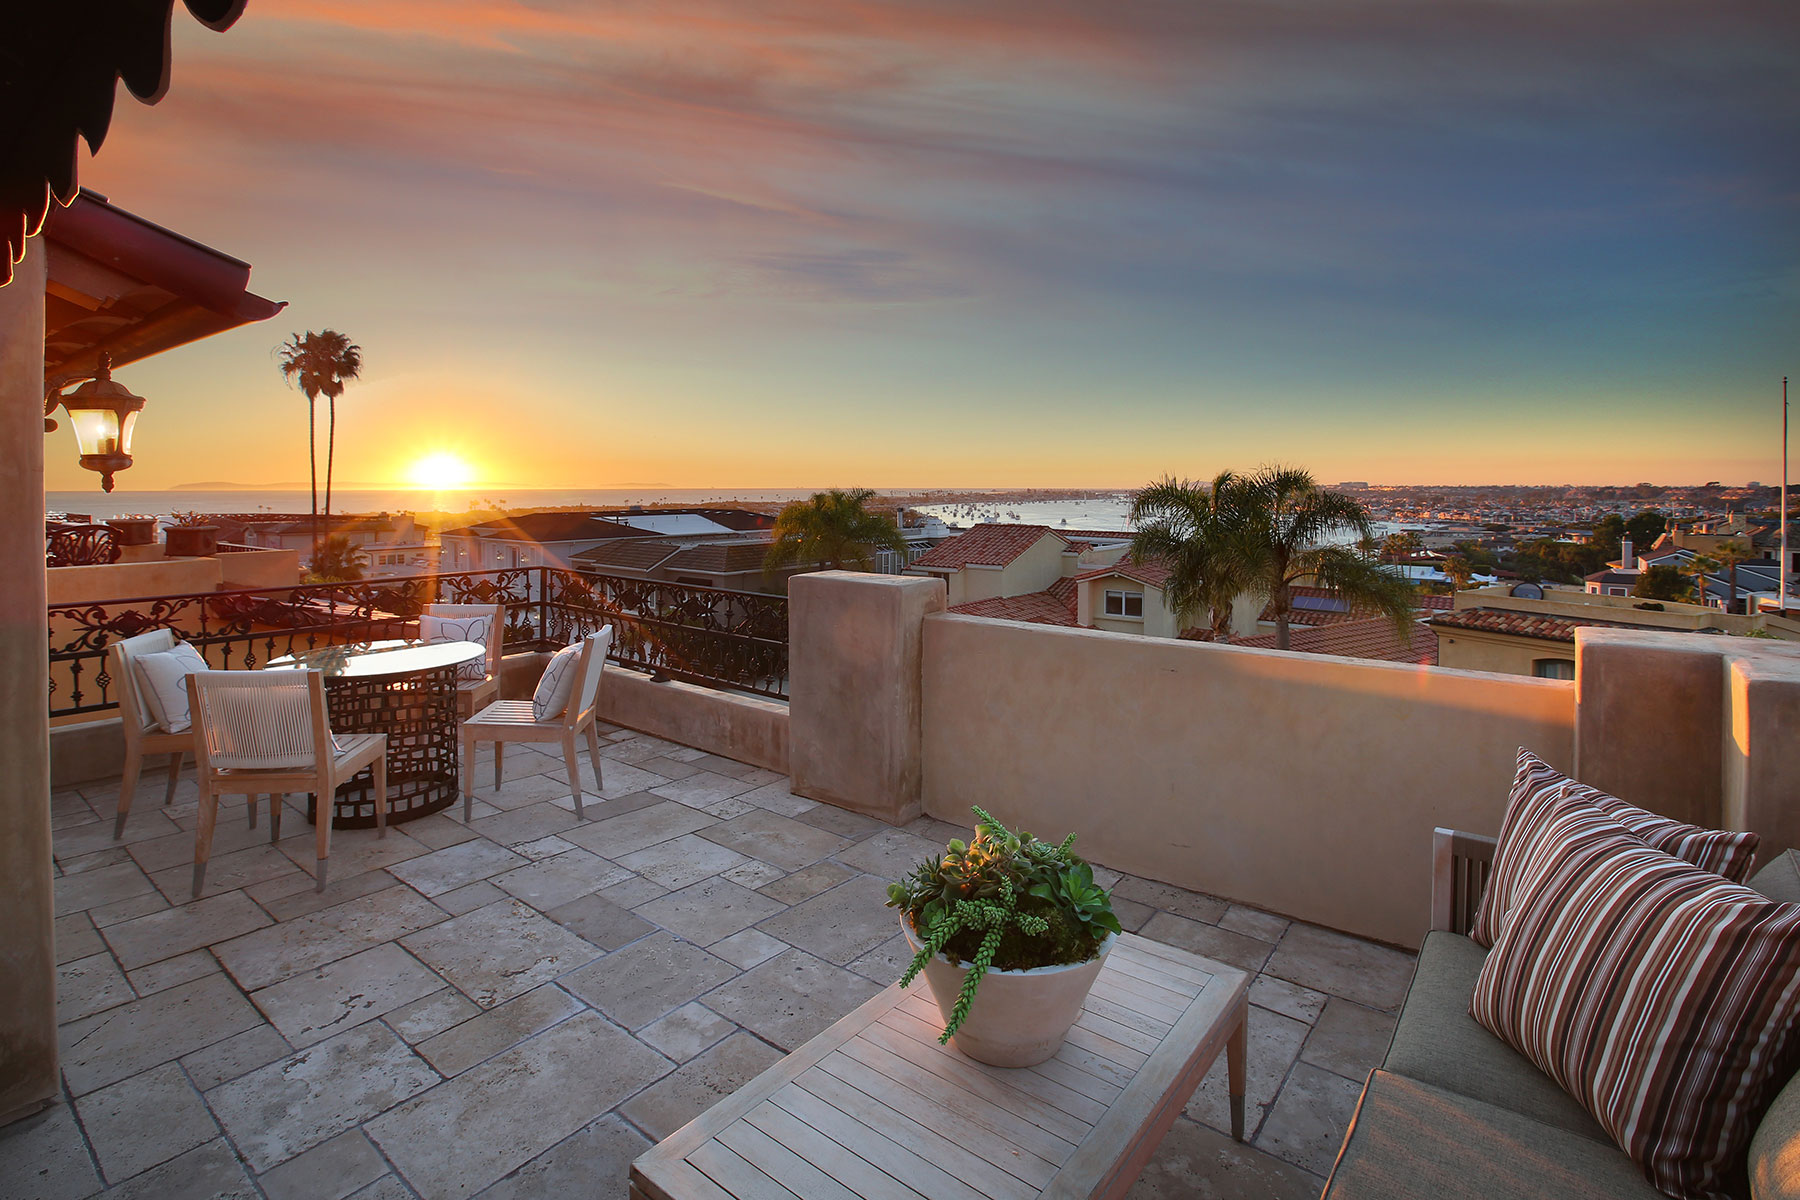 Single Family Home for Sale at 312 Carnation Corona Del Mar, California 92625 United States